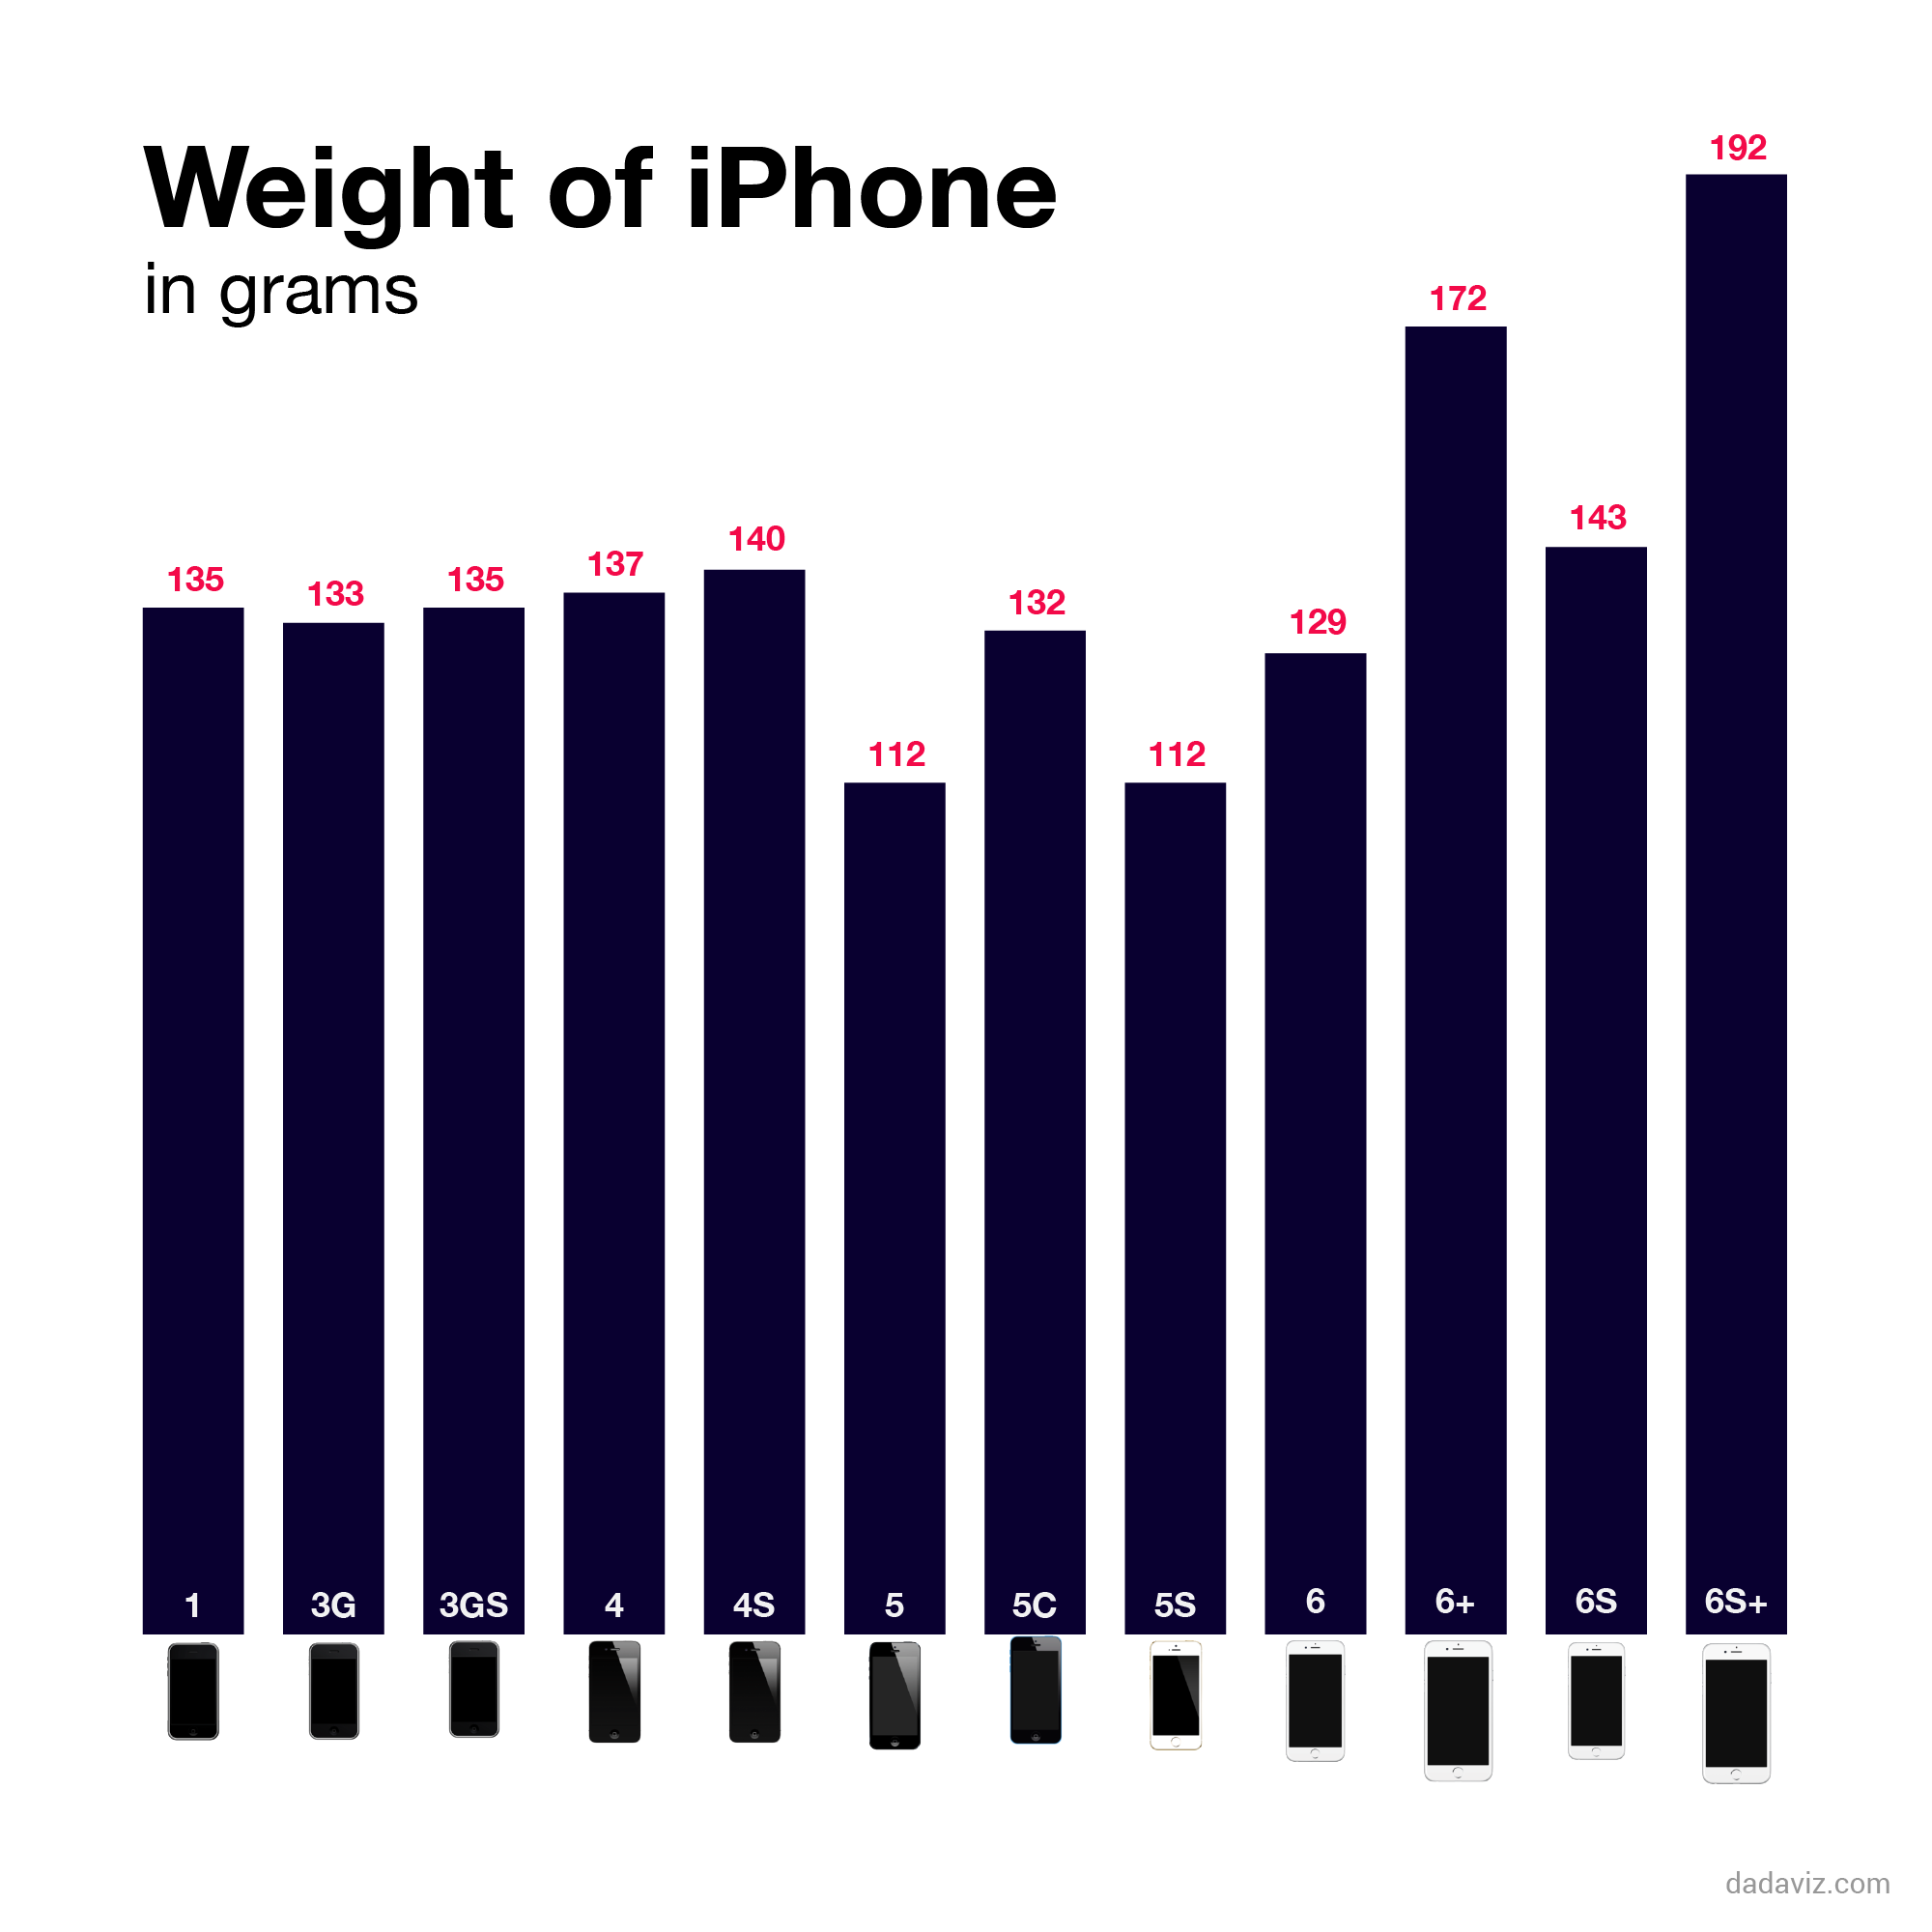 the new iphone is the heaviest iphone ever made 1442122719.75 8848082